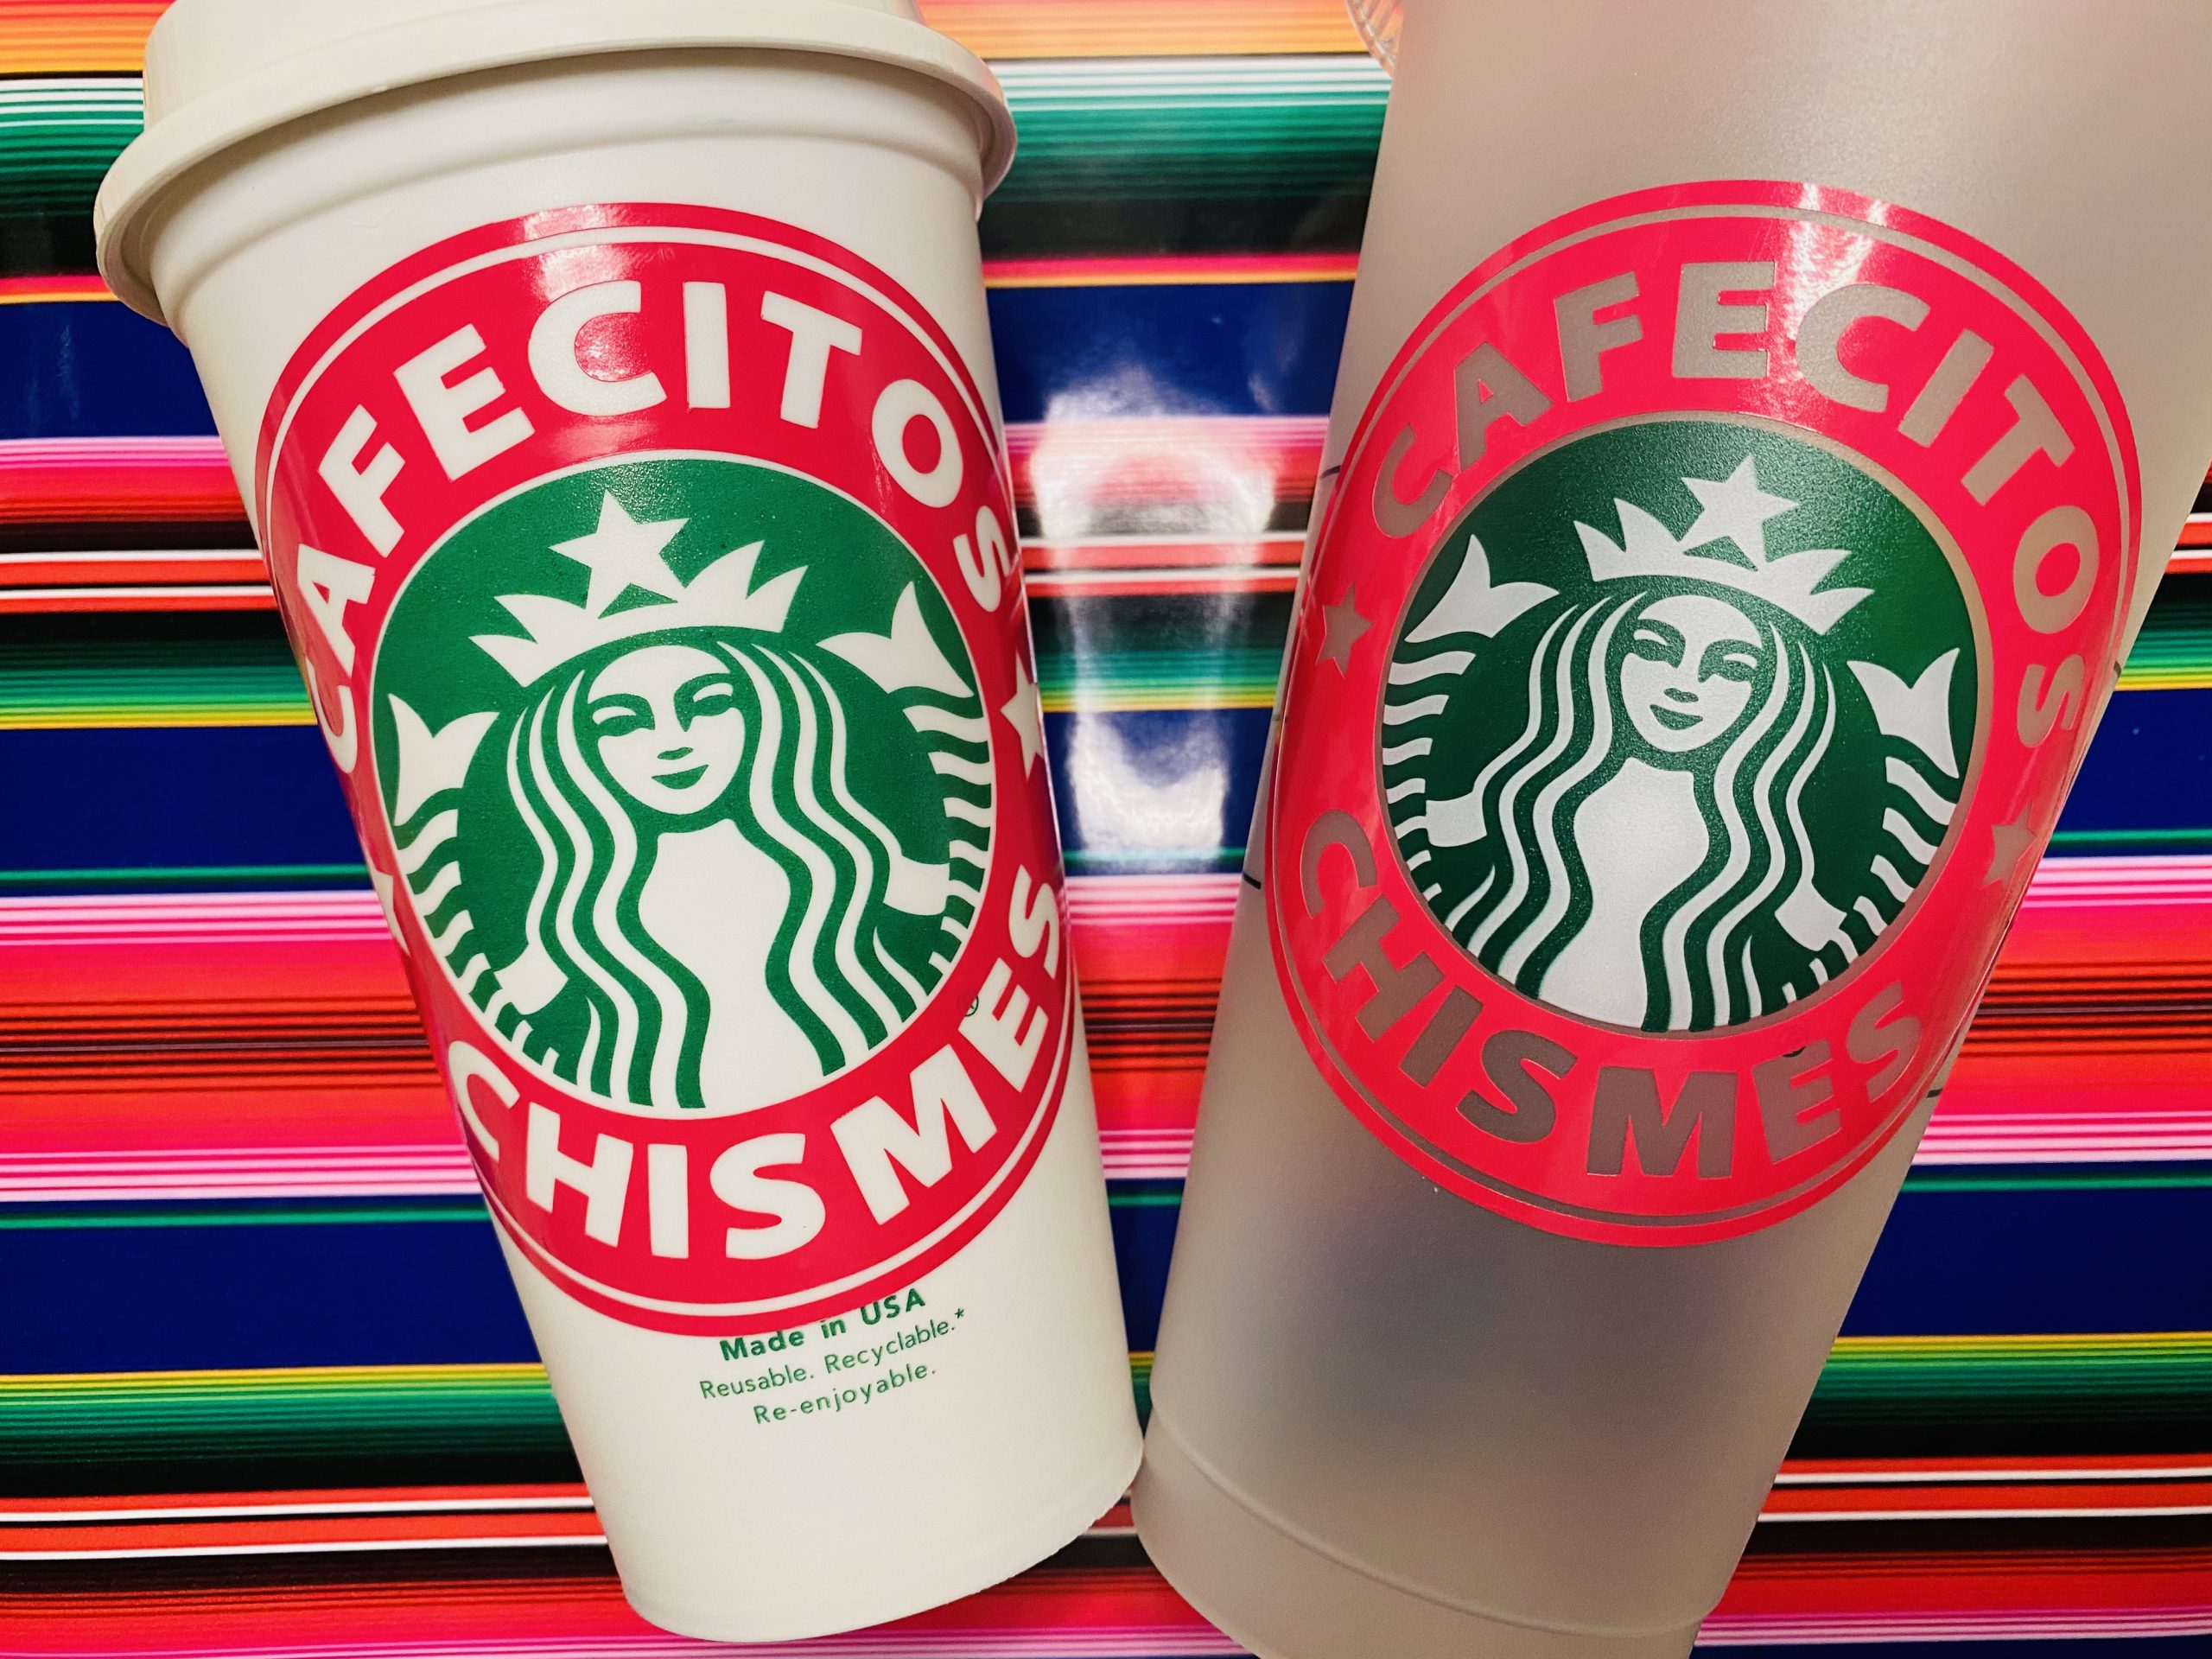 Cafecito At Starbucks Free Svg Cafecito En Starbucks Svg Gratis Cheeky Minds